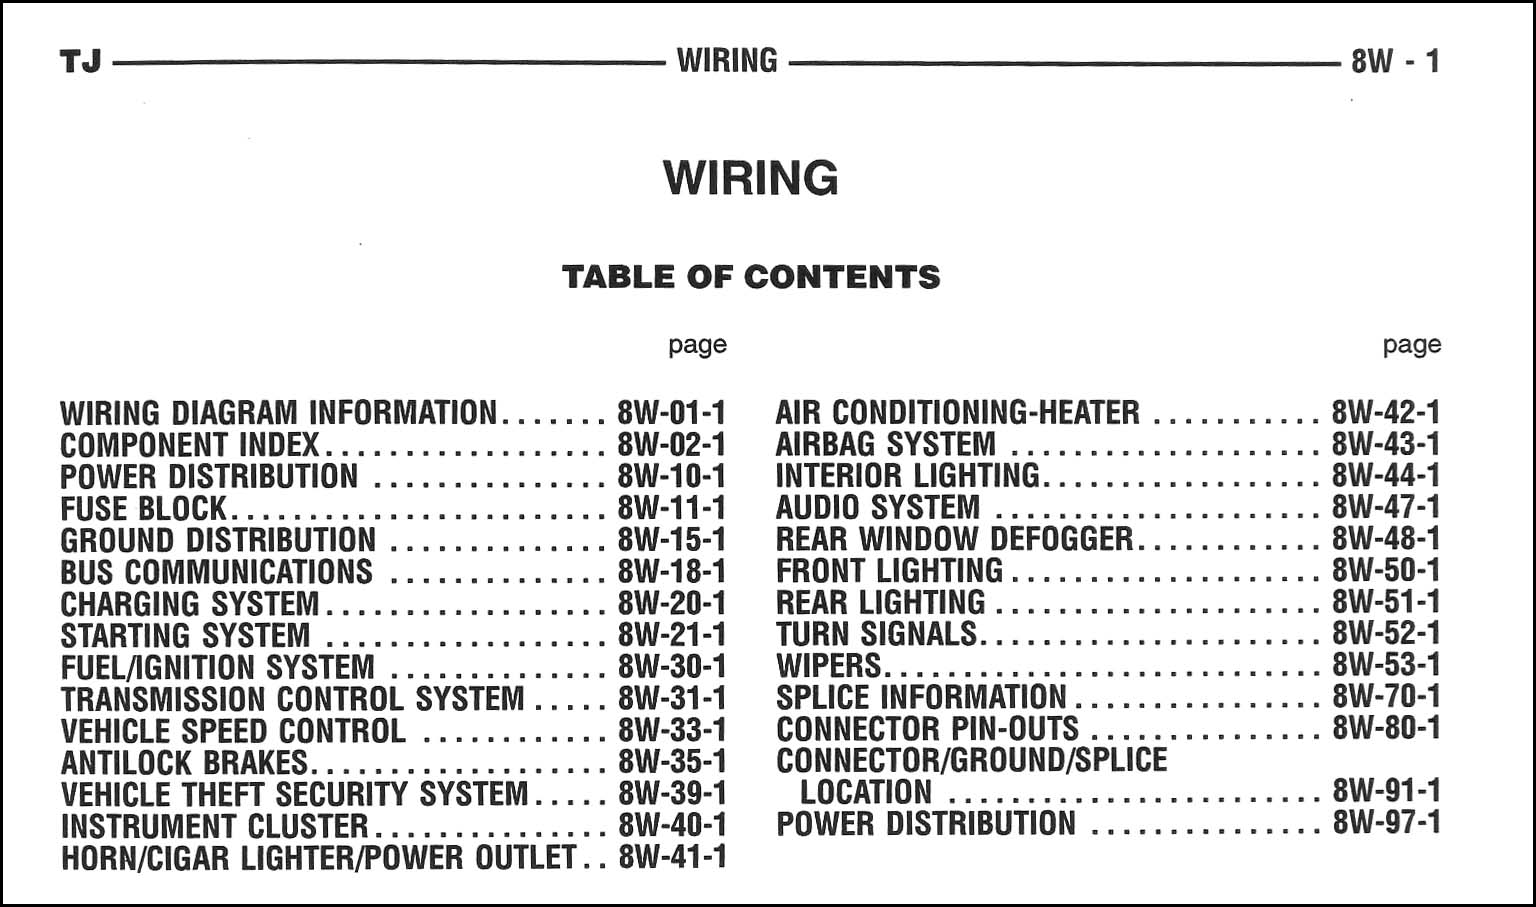 2005JeepWranglerOWD TOC?resize=665%2C393 wiring diagram for 2005 jeep wrangler readingrat net 2005 jeep wrangler stereo wiring diagram at gsmx.co